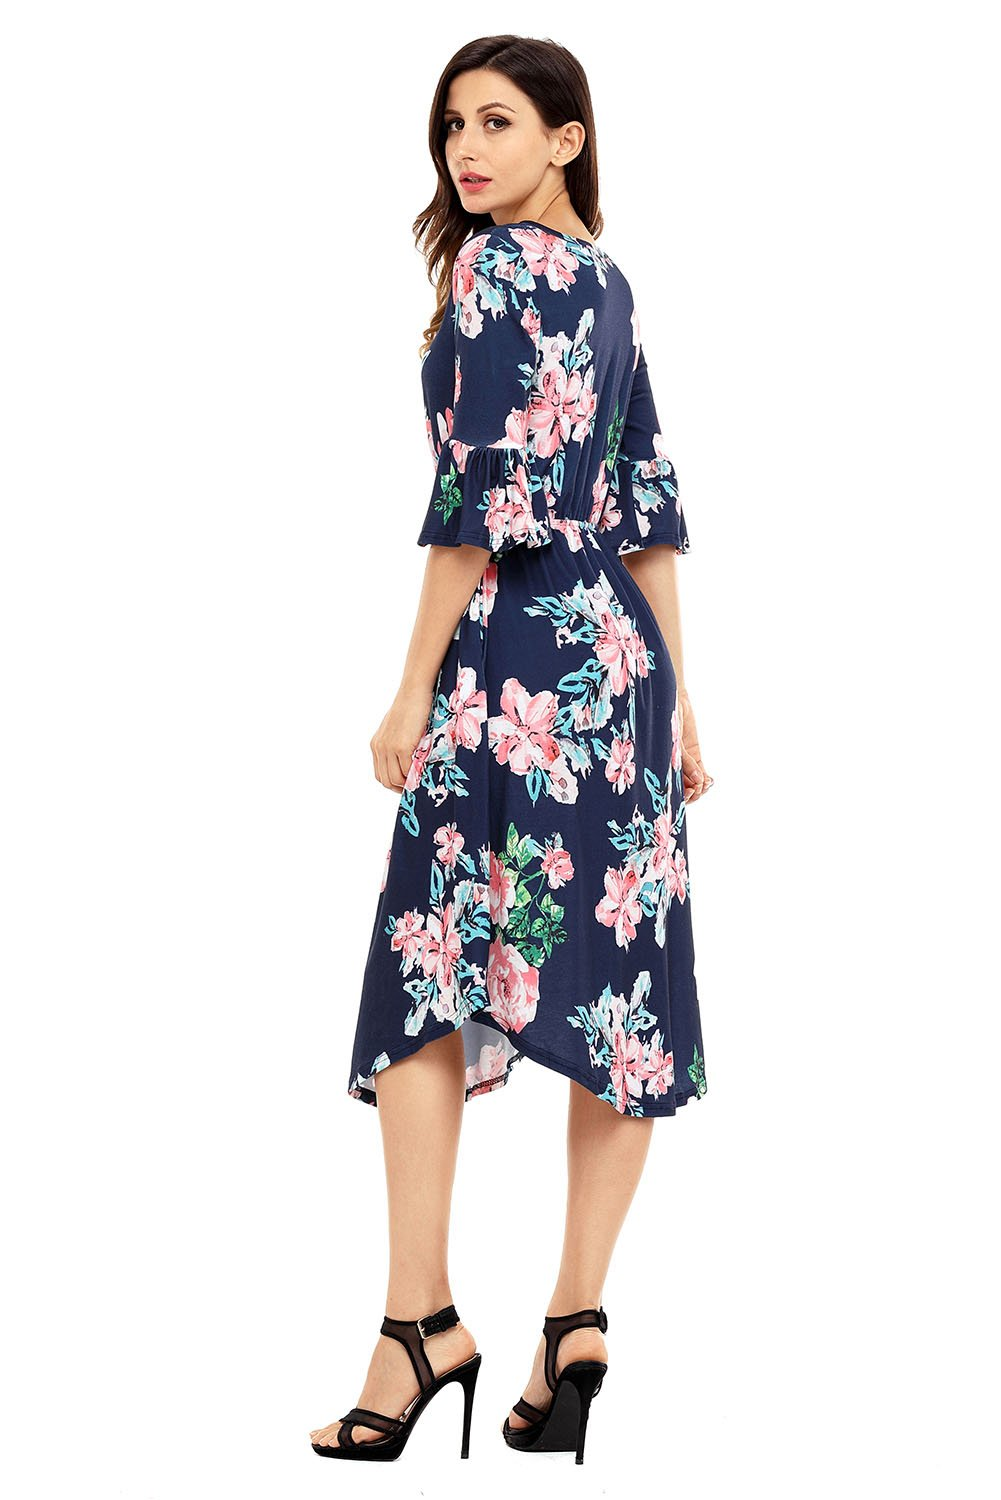 dffe14bc6bc Available in Plus Size Dresses. Available in Plus Size Dresses Flowy Floral  Dress, Floral Dresses With Sleeves, Midi Dresses